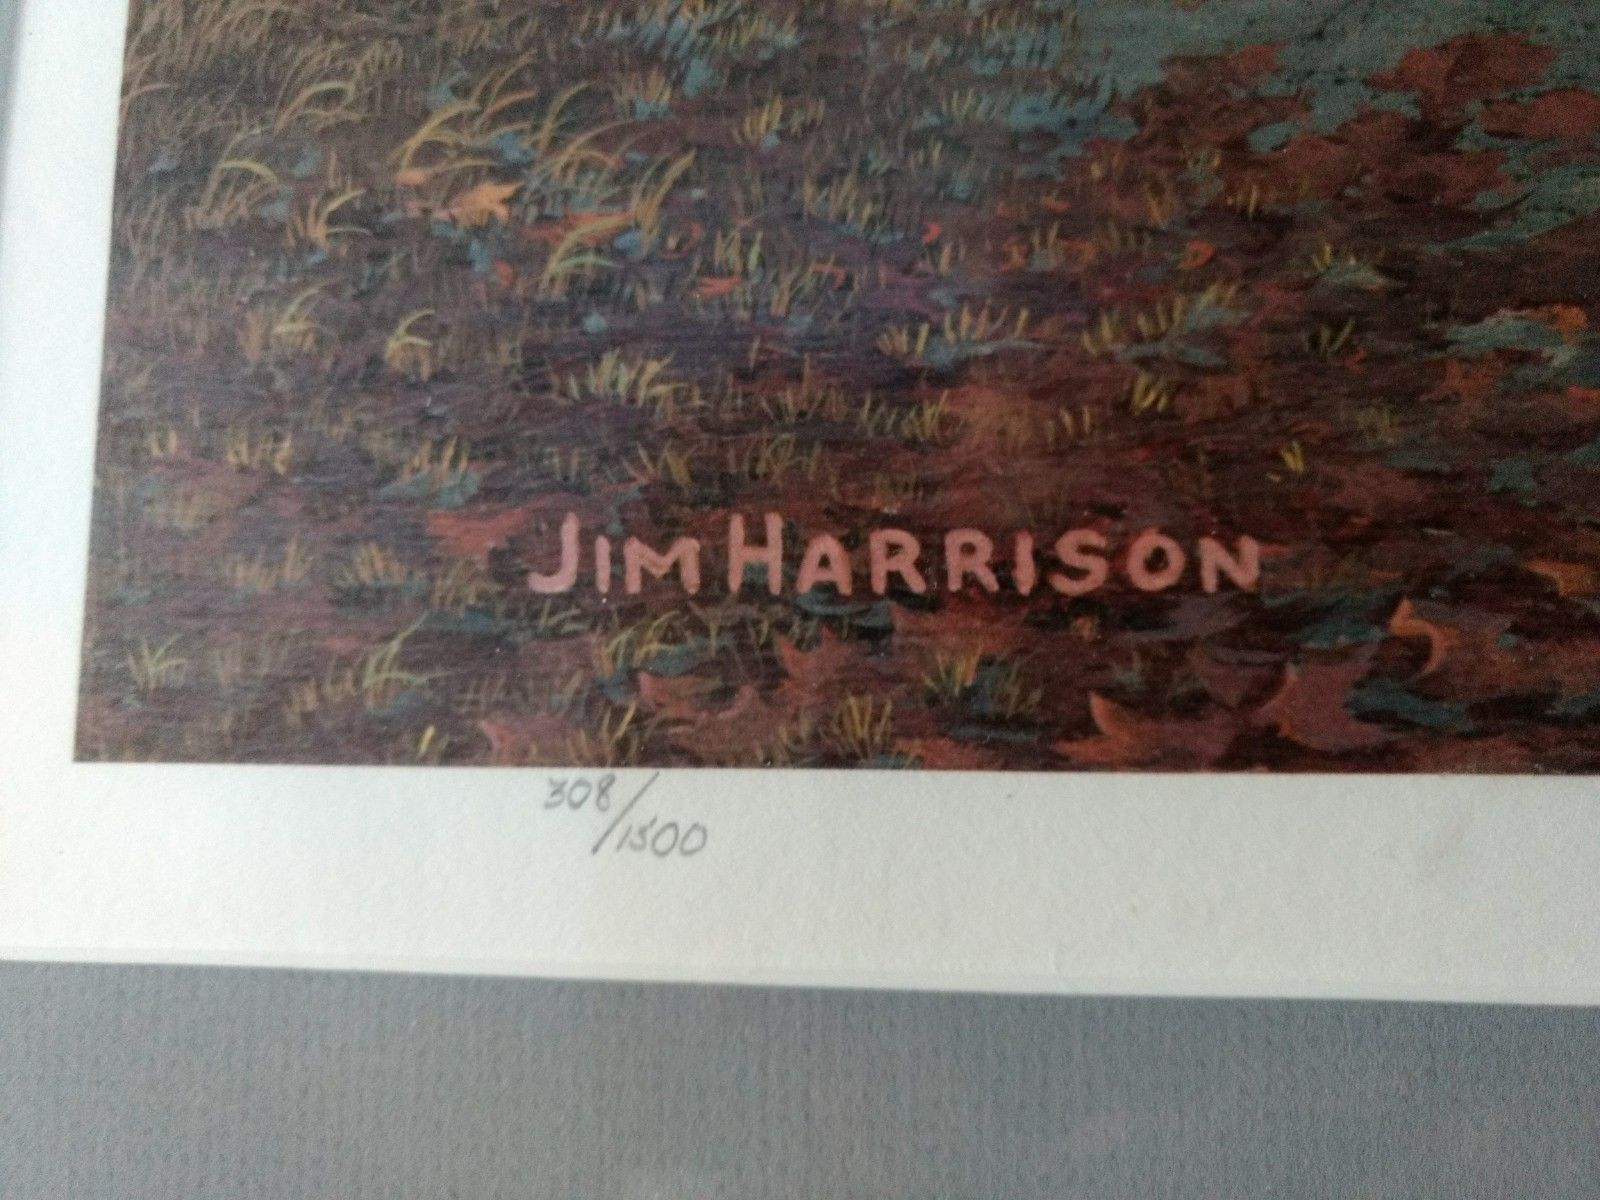 Jim Harrison Signed Print 308 of 1500 Shrine Circus Framed in Barn Siding w/COA